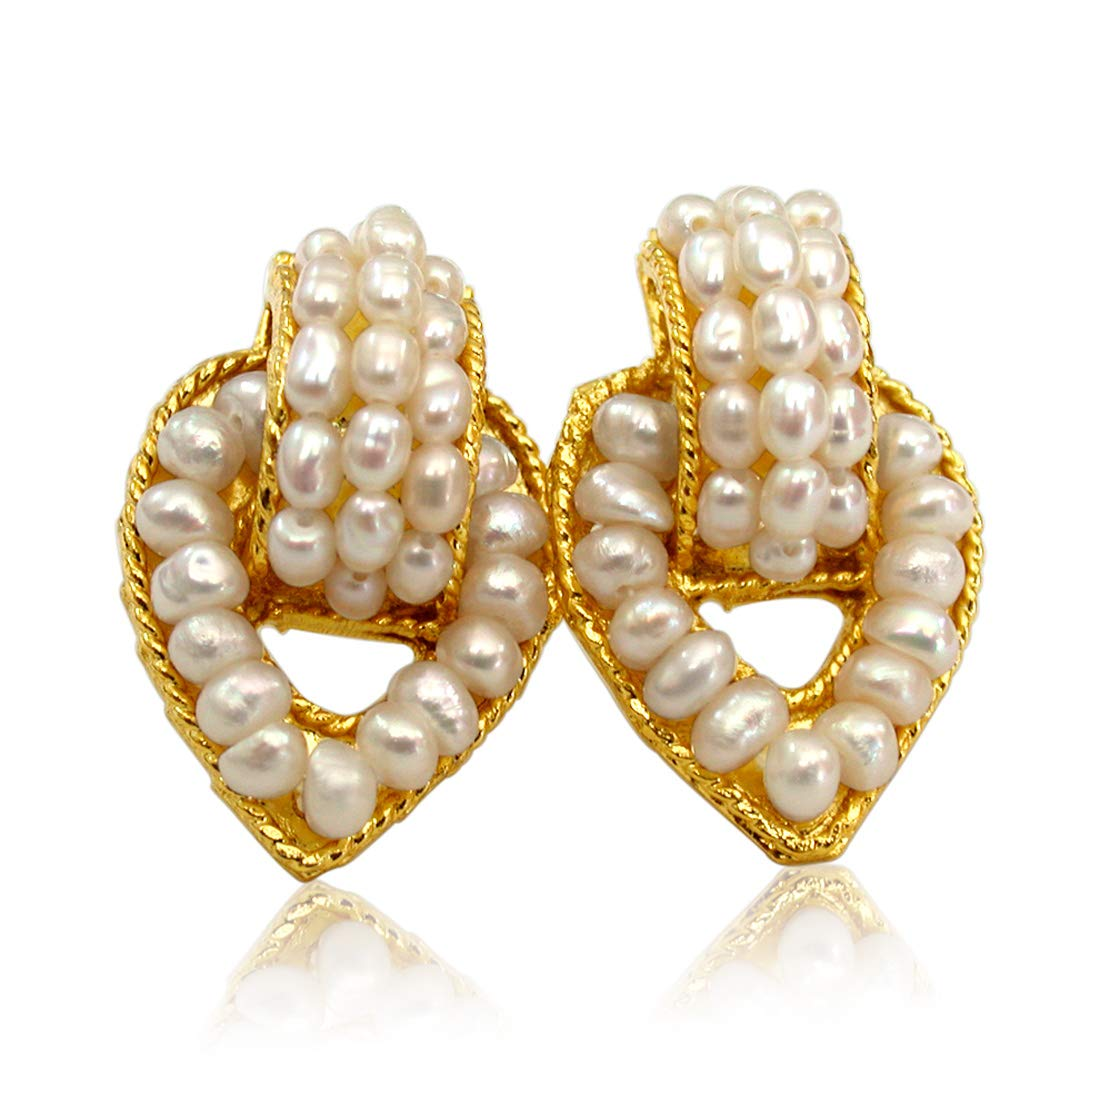 Pearl Charmer - Real Freshwater Pearl & Gold Plated Earrings for Women (SE50)